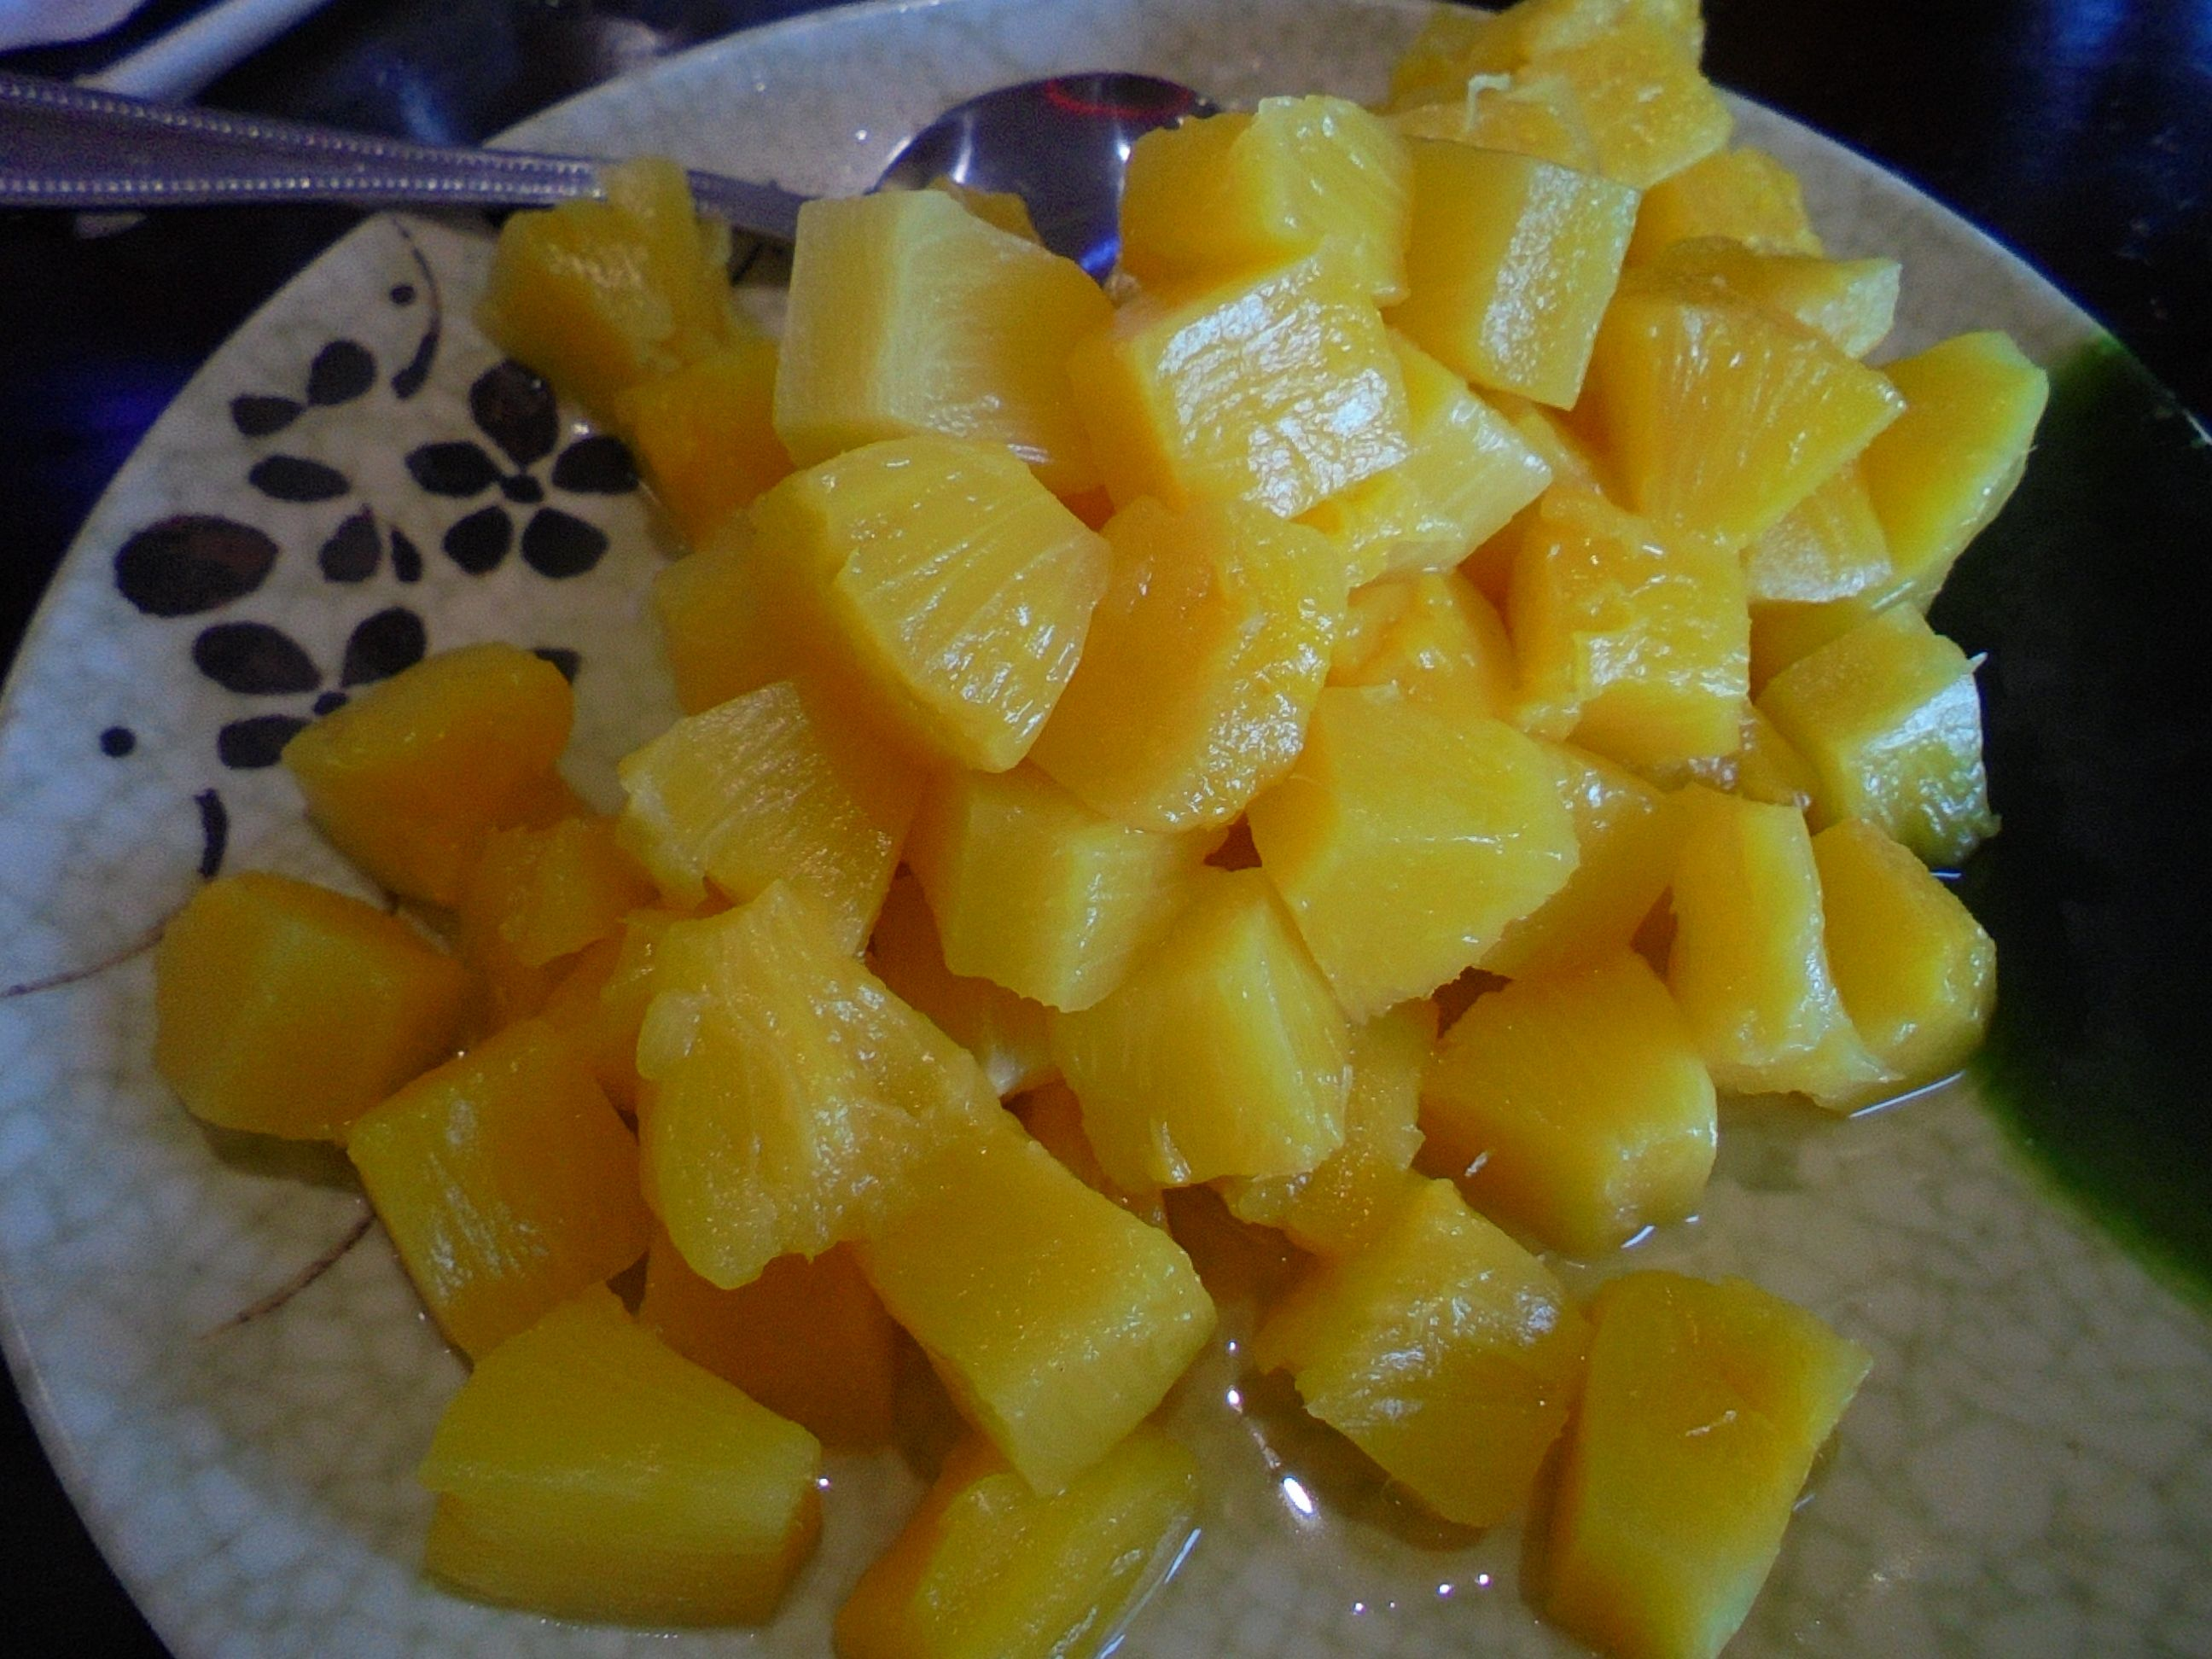 #Fresh #sliced #Dole #pineapple #fruit - #eatingright i spossible with the #right #mindset and #determination to #loseweight